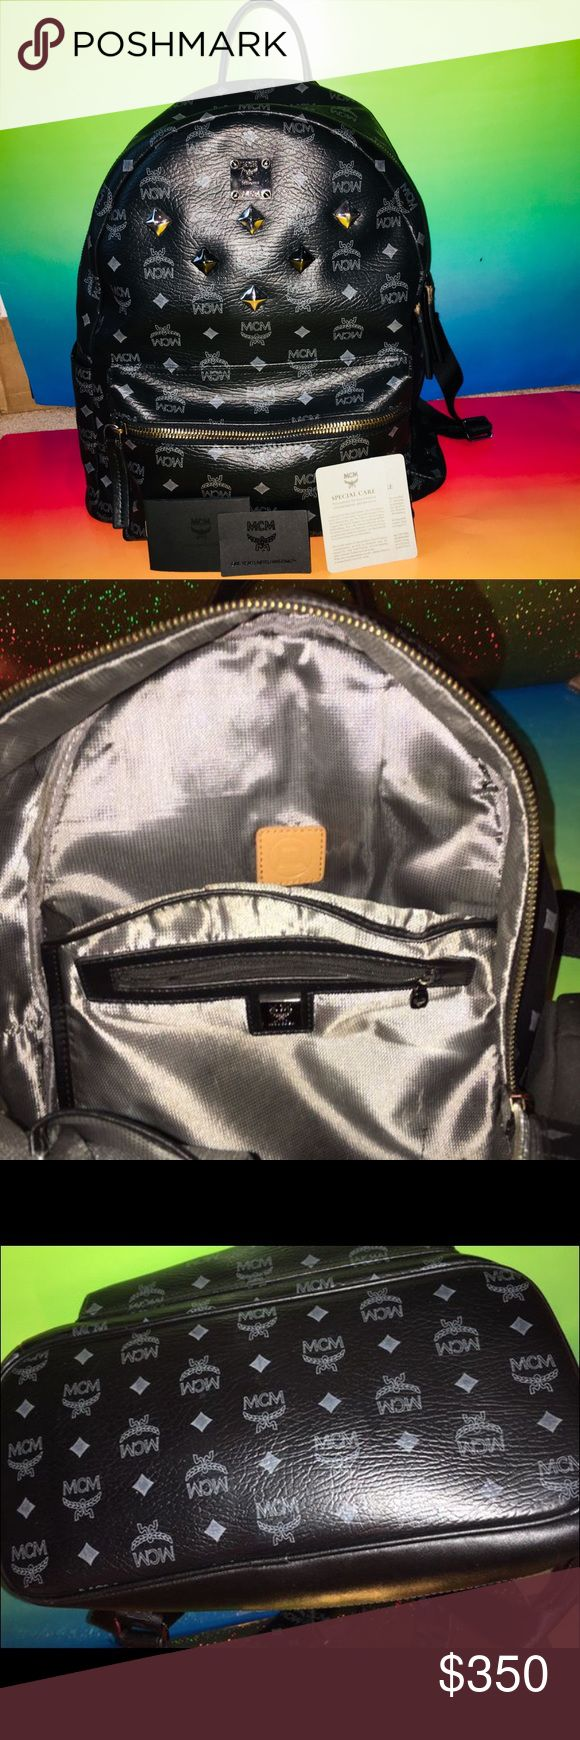 AUTHENTIC MCM BLACK STUDDED BACKPACK LARGE AUTHENTIC MCM BLACK STUDDED BACKPACK LARGE. Has room for a laptop inside 100% authentic ! IN GREAT CONDITION! I HAVE THE AUTHENTICITY CARDS THAT CAME WITH THE BACKPACK SEE 1st photo! MCM Bags Backpacks